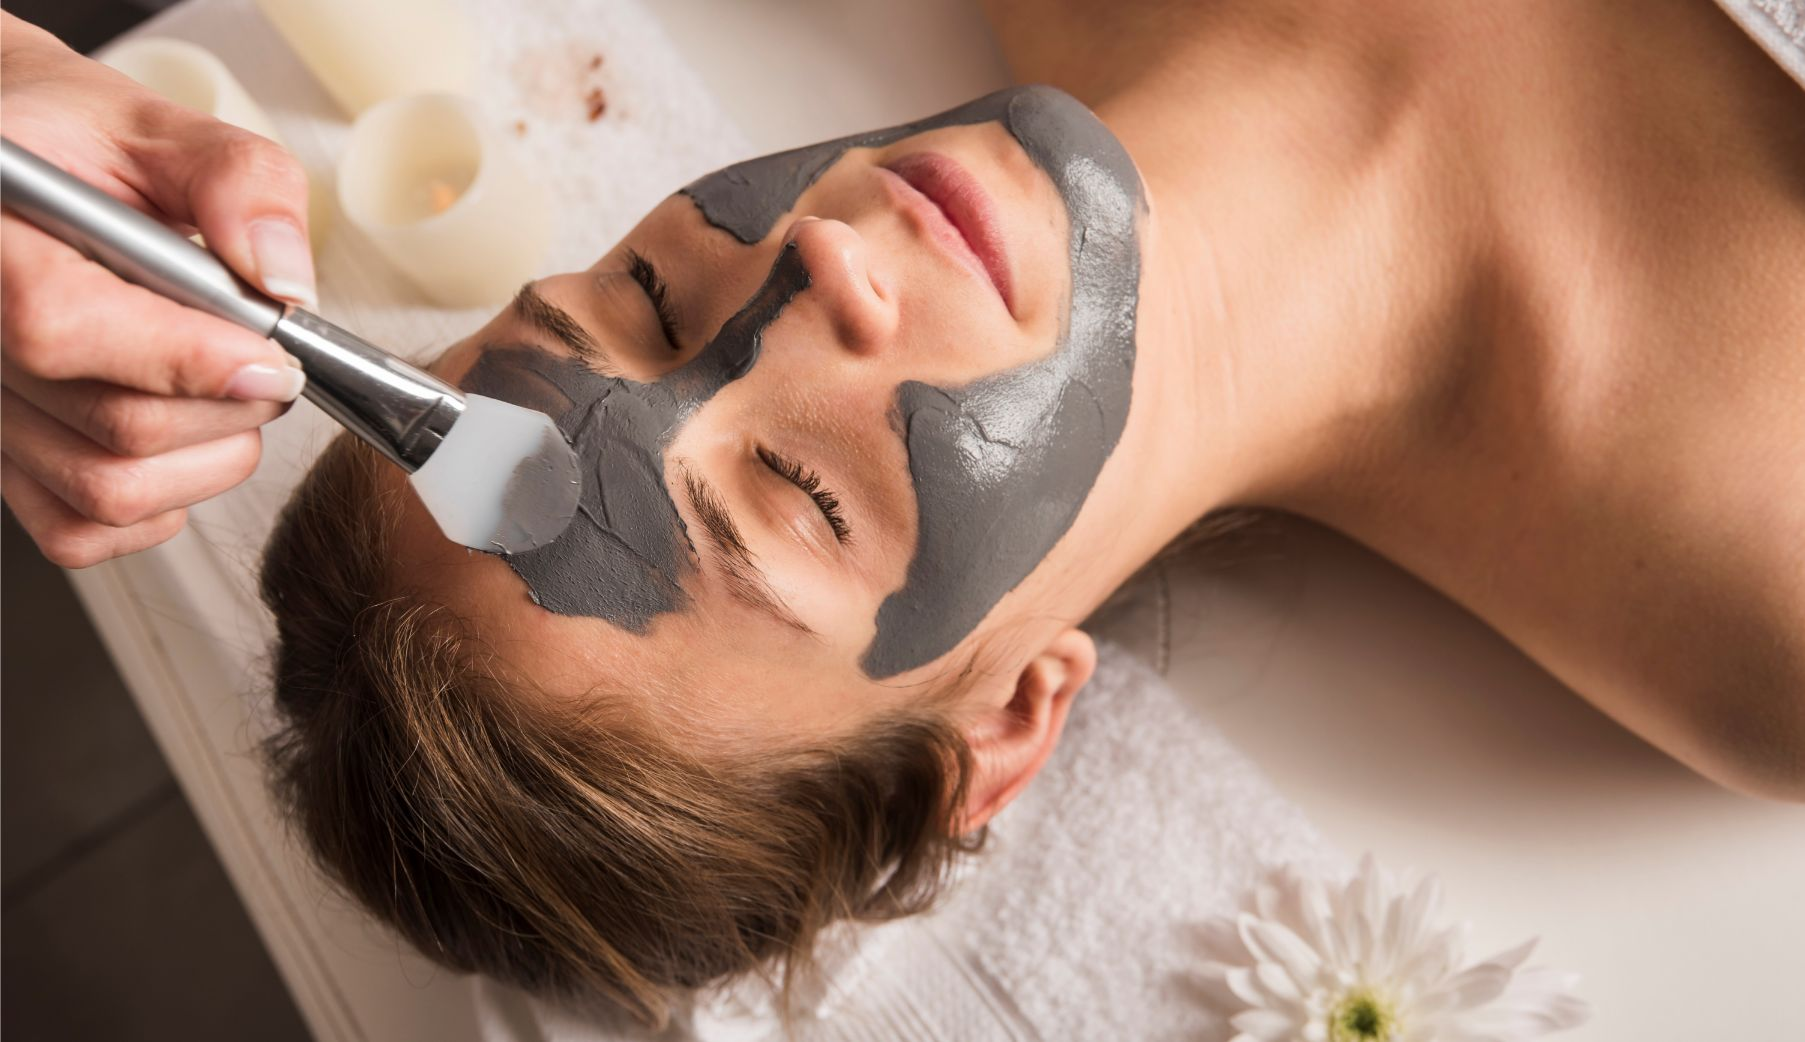 How to Get Rid of Blackheads: Masks for Men